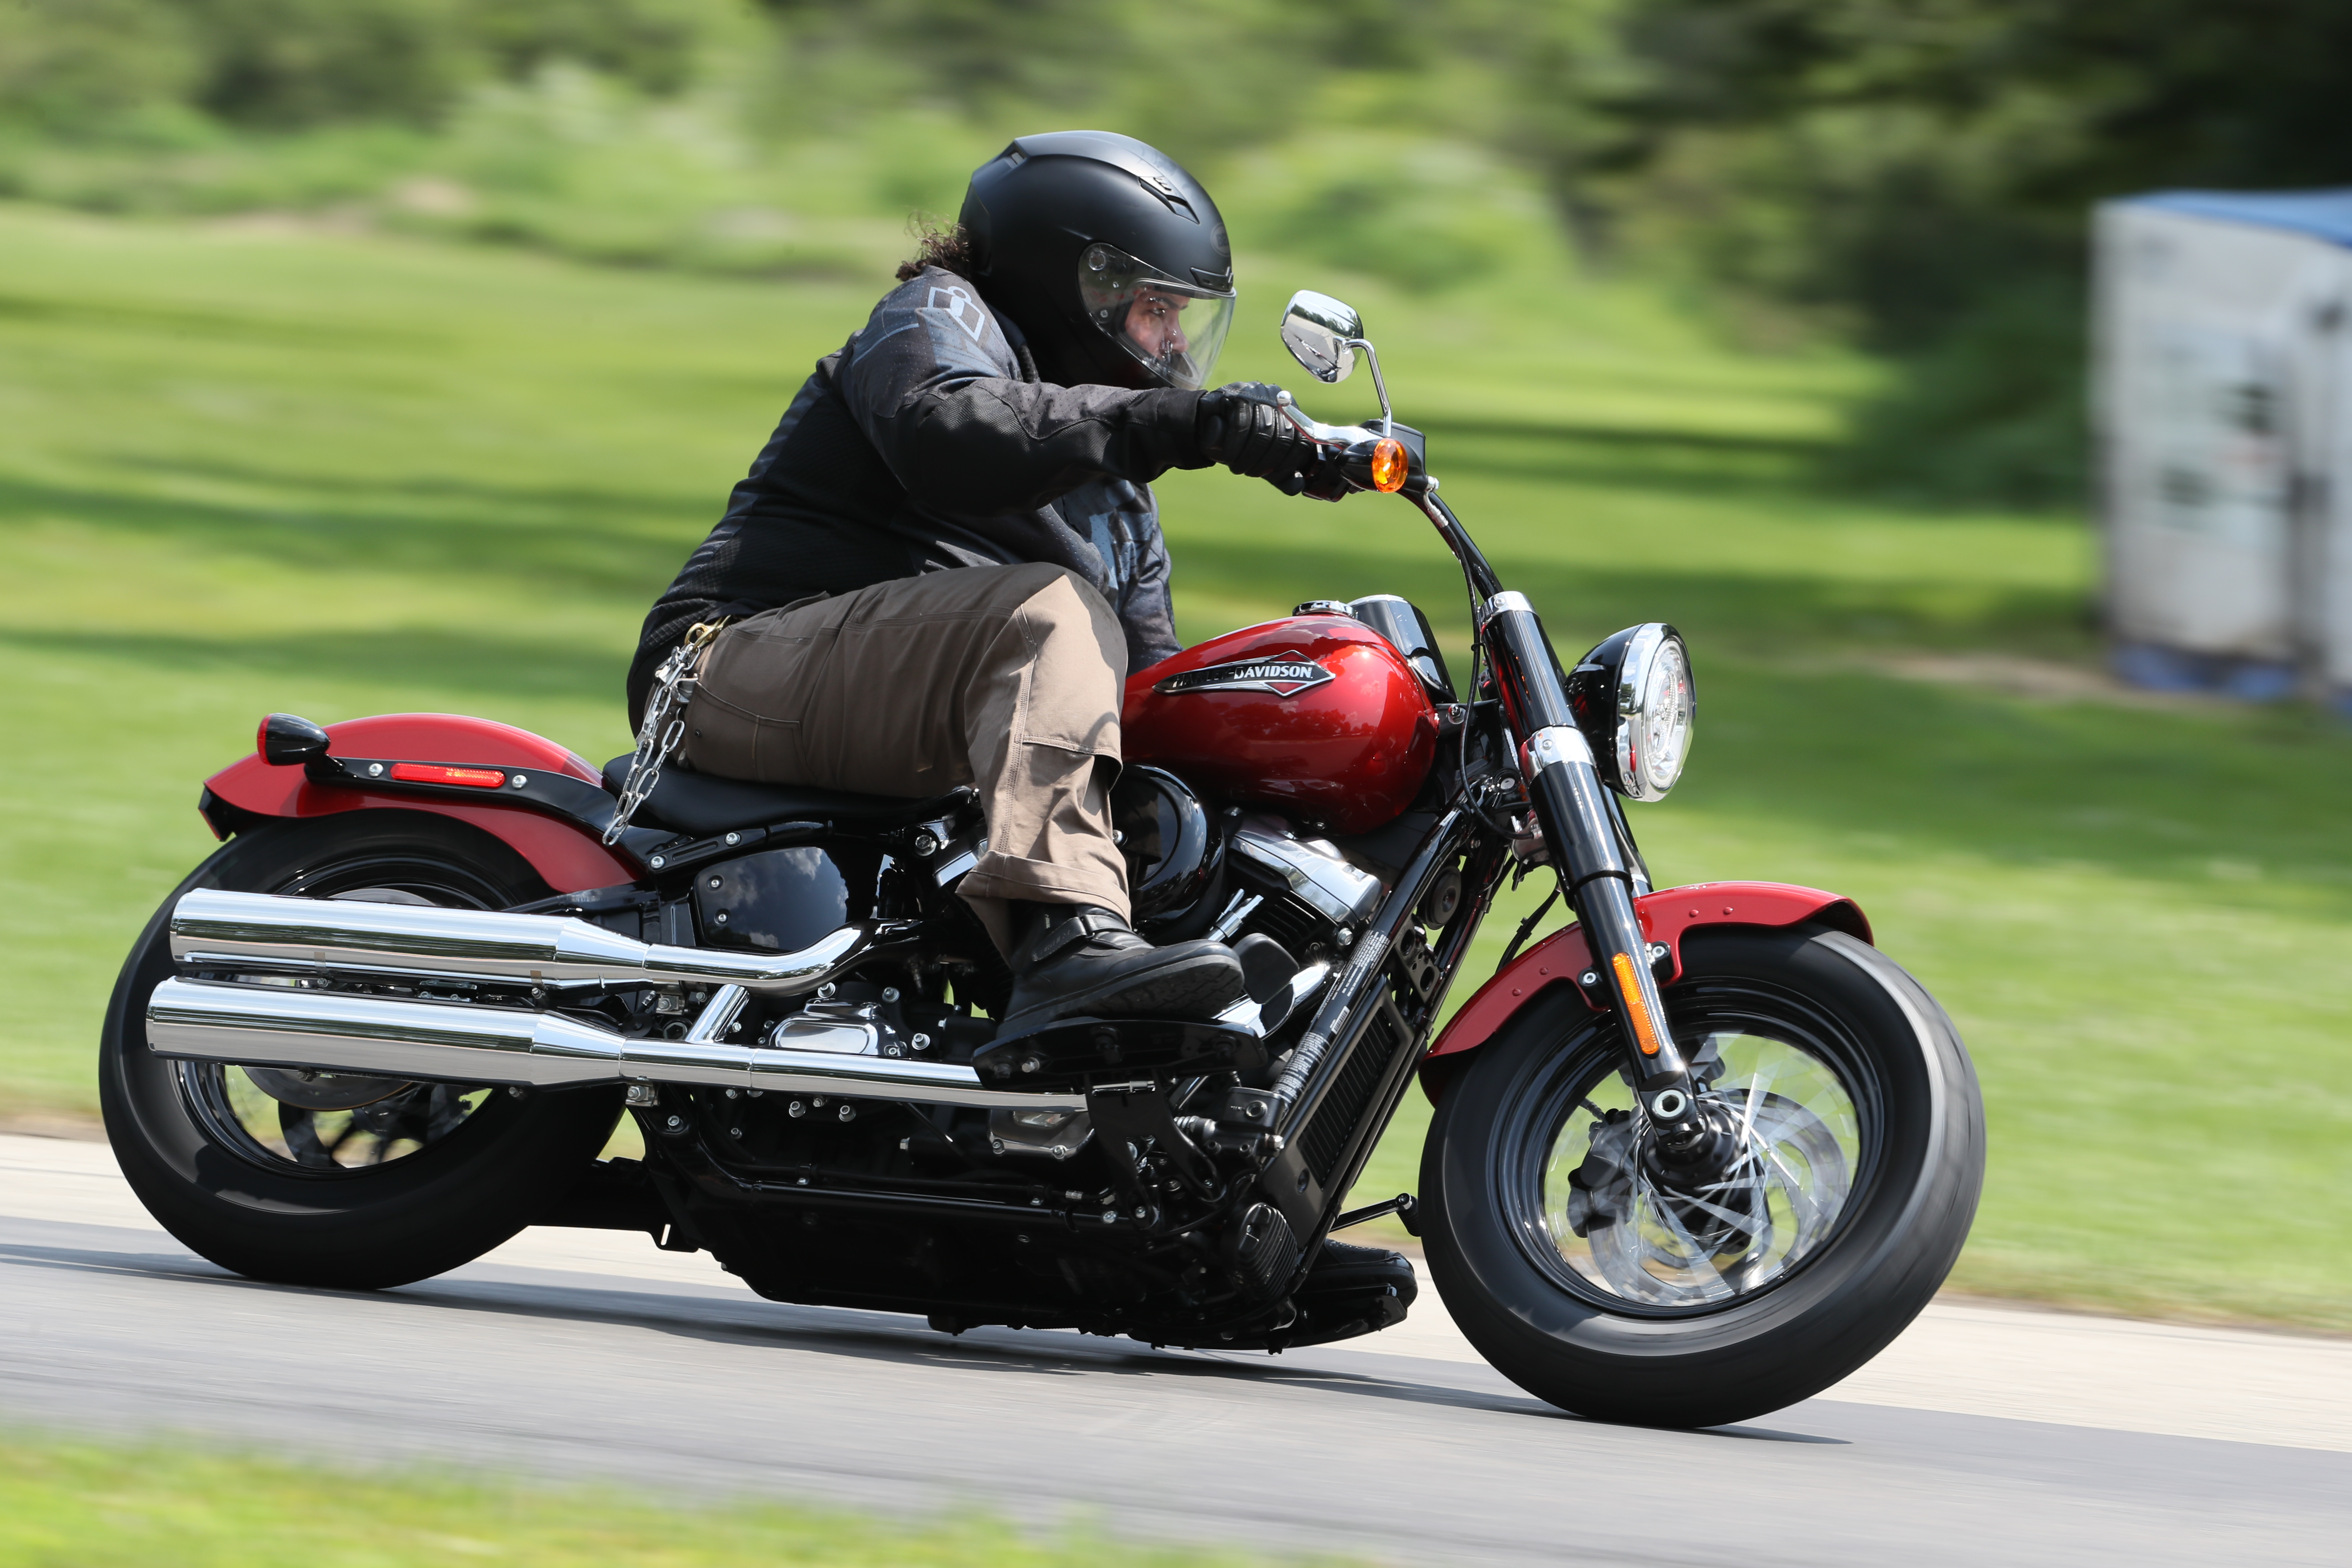 d9d51e39a 2018 Harley-Davidson Softail(s) first ride review - RevZilla